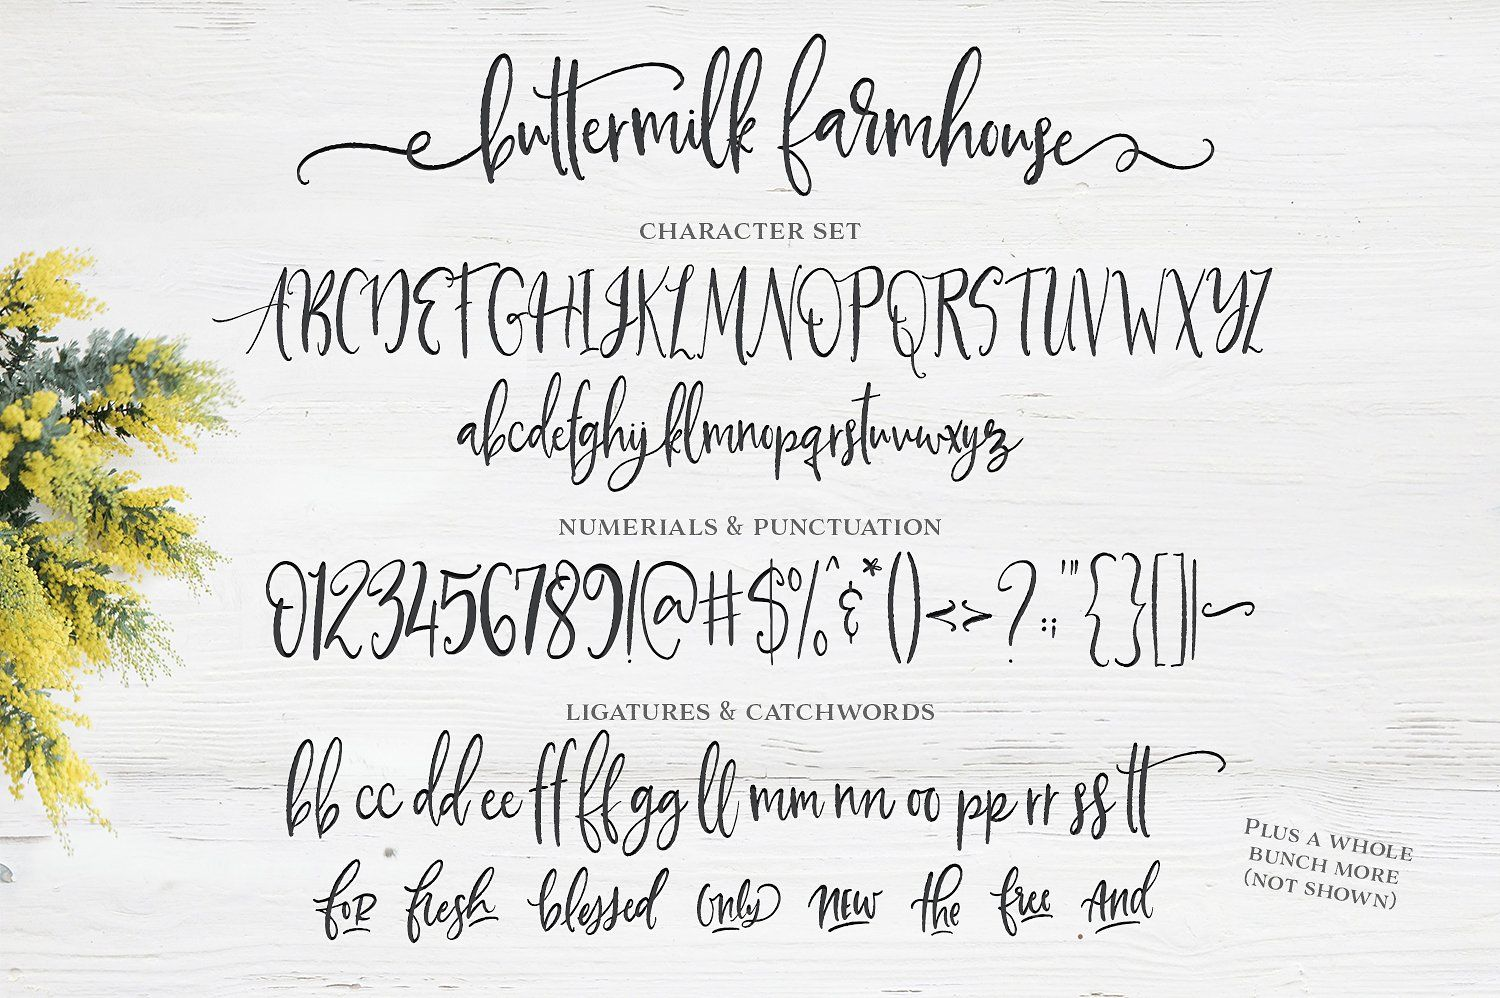 Buttermilk Farmhouse Type Graphics By Callie Hegstrom On Creativemarket